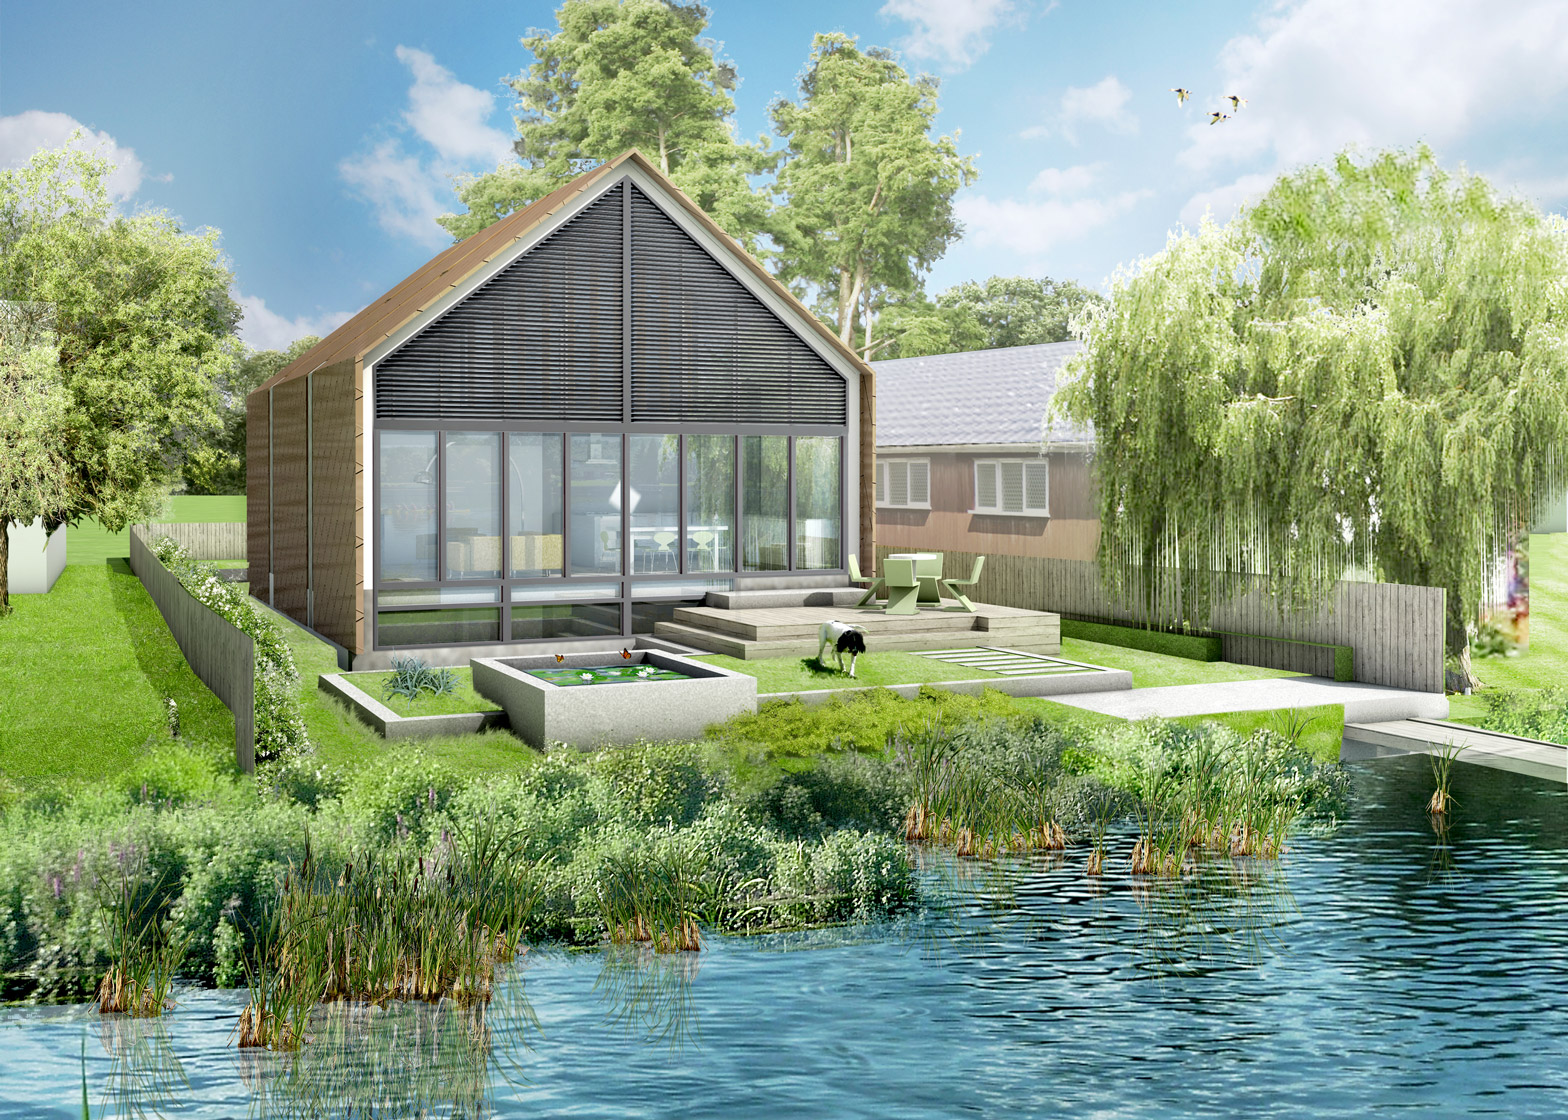 Baca Architects' Amphibious House on the River Thames